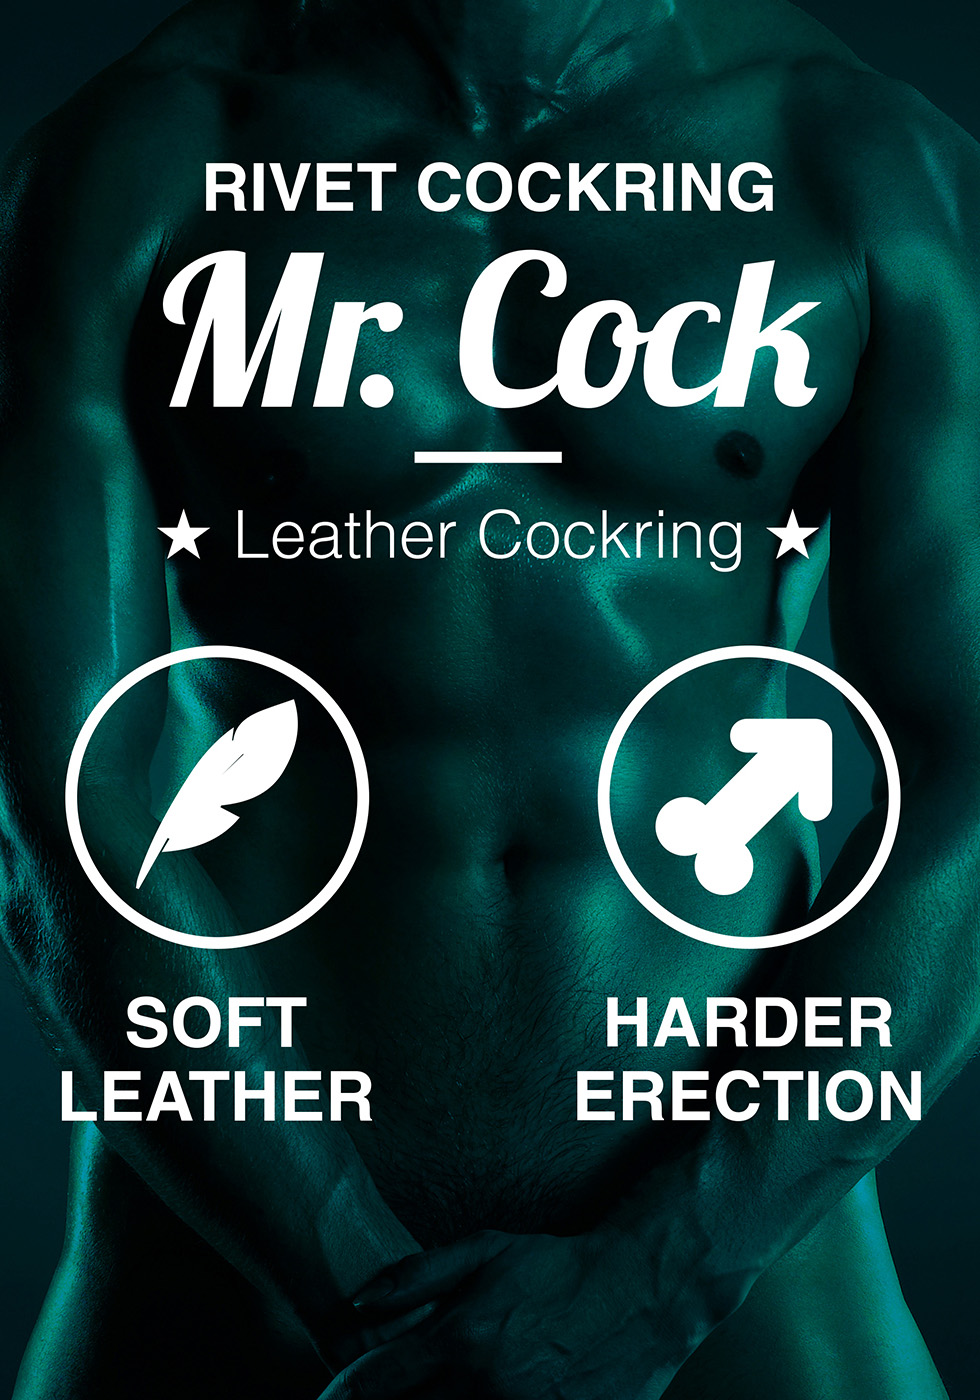 Mr. Cock Rivet Leather Cockring